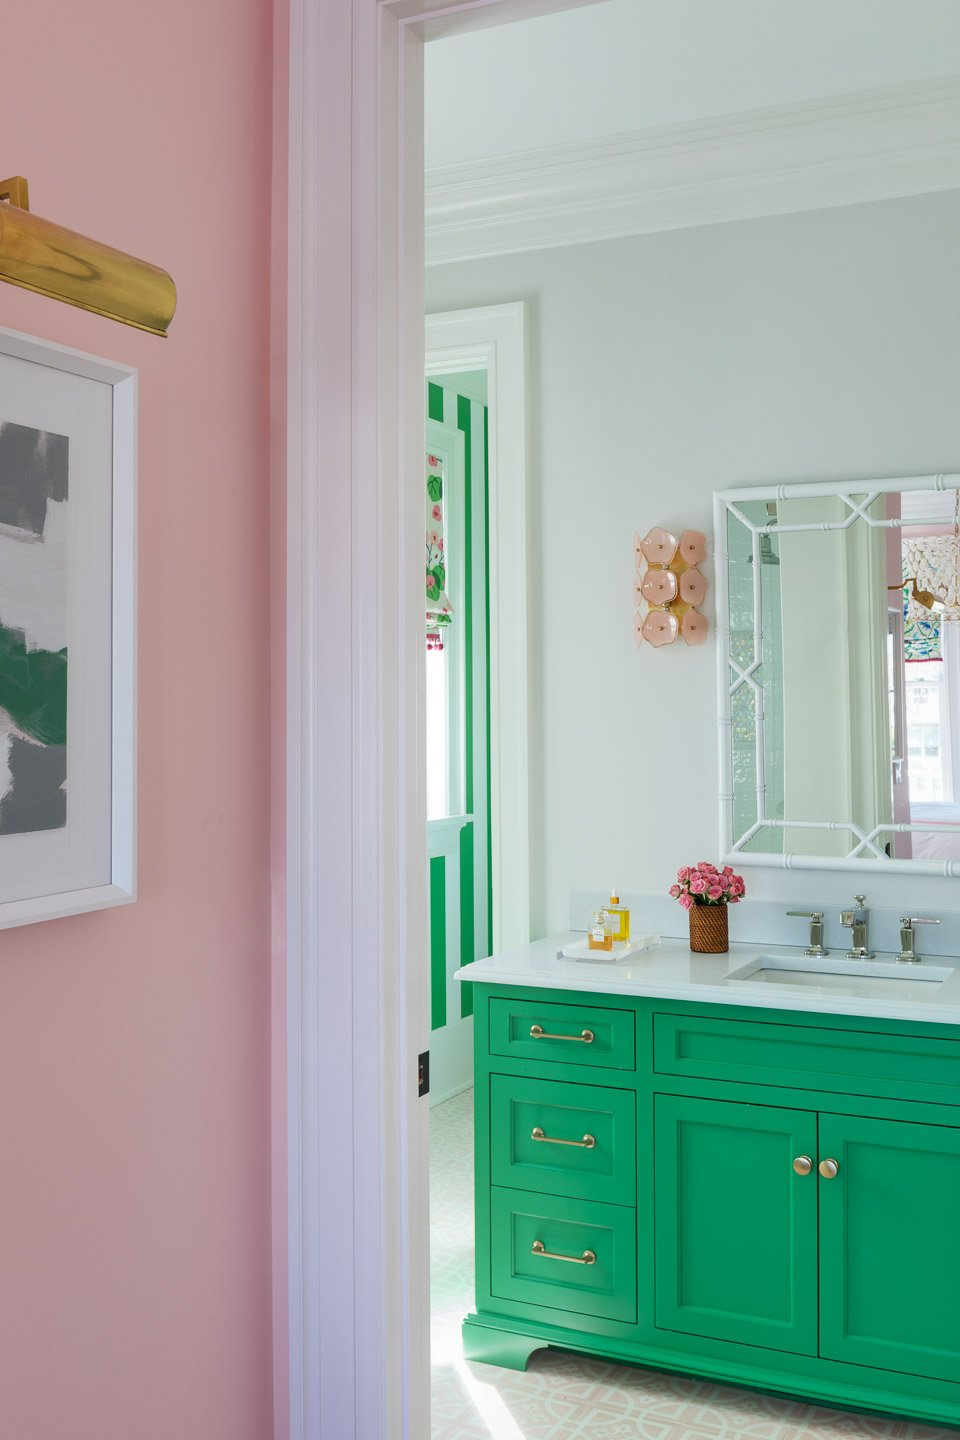 Blakely Interior Design | The Jersey Palm Project | Daughter's Bathroom